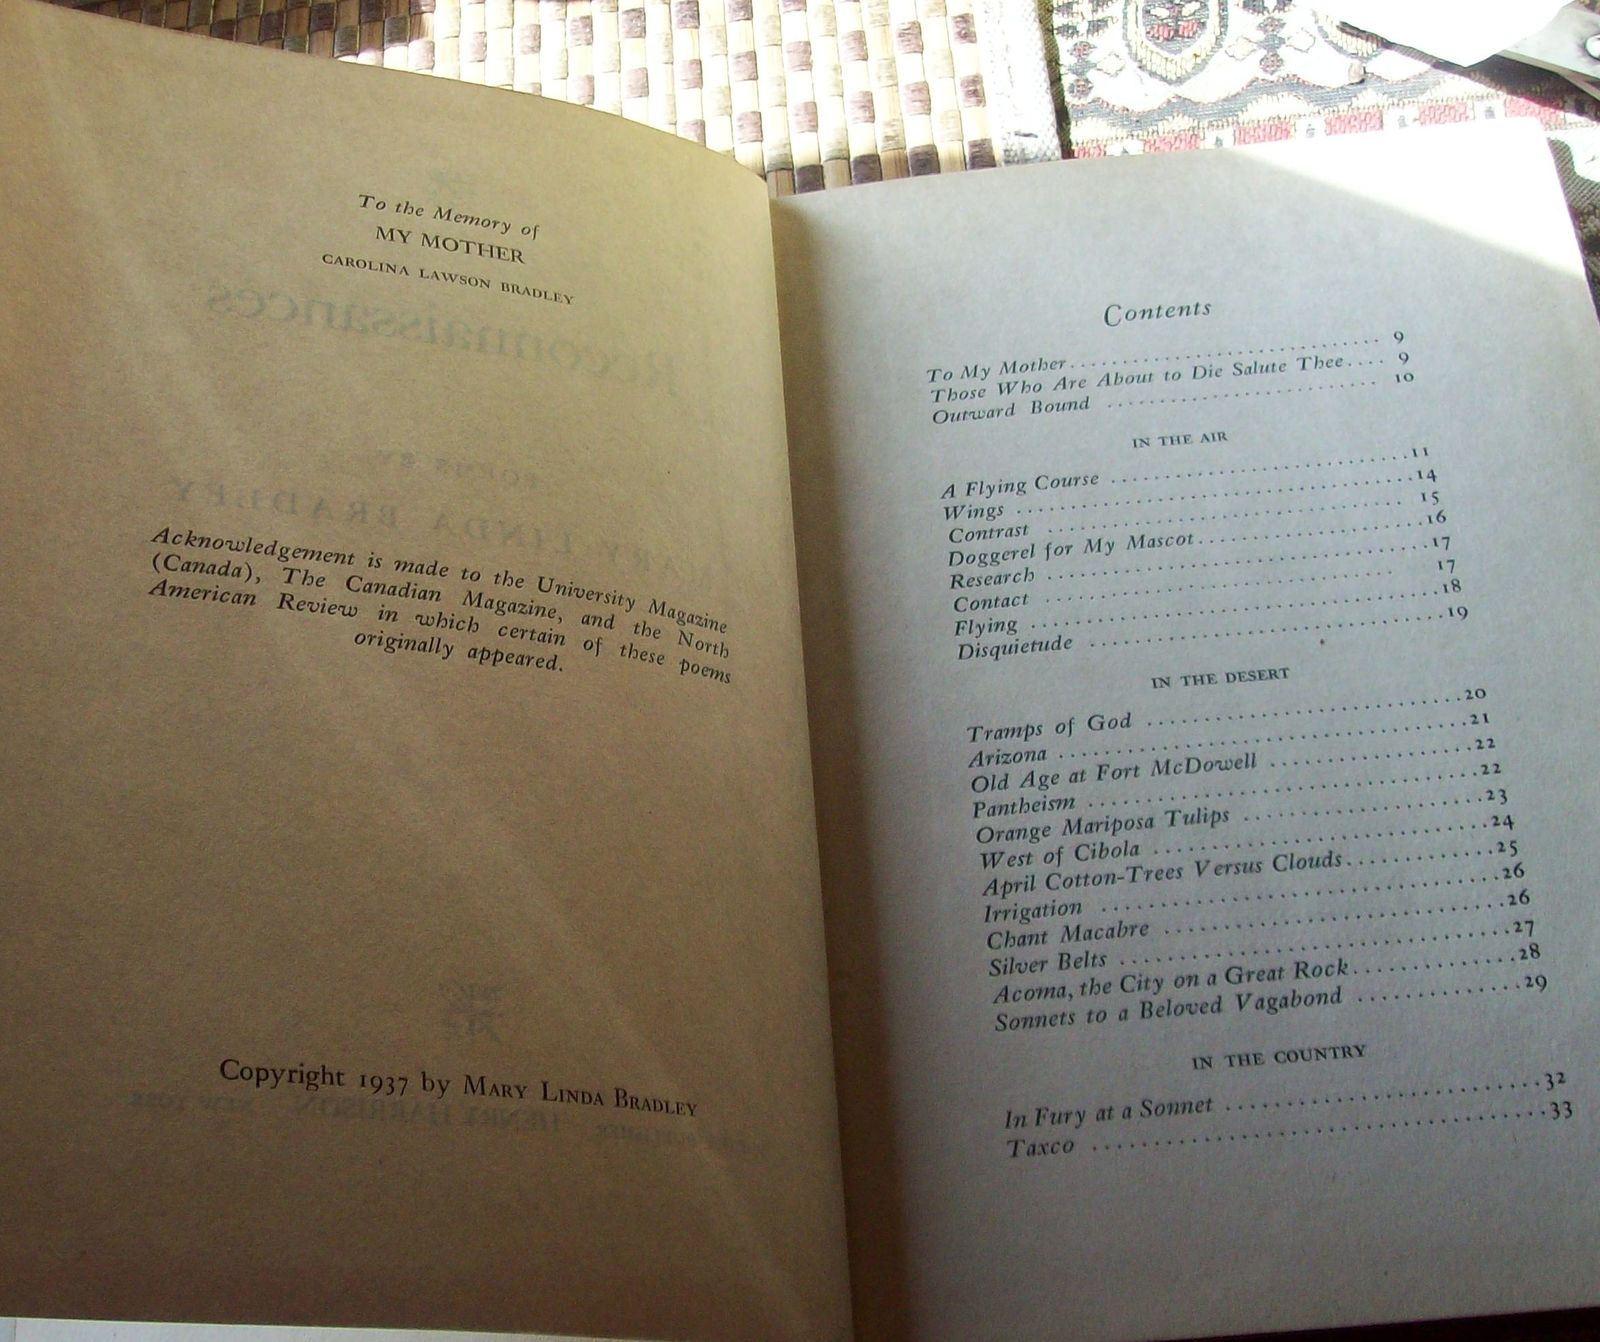 Reconnaissances by Mary Linda Bradley 1937 HB Poems